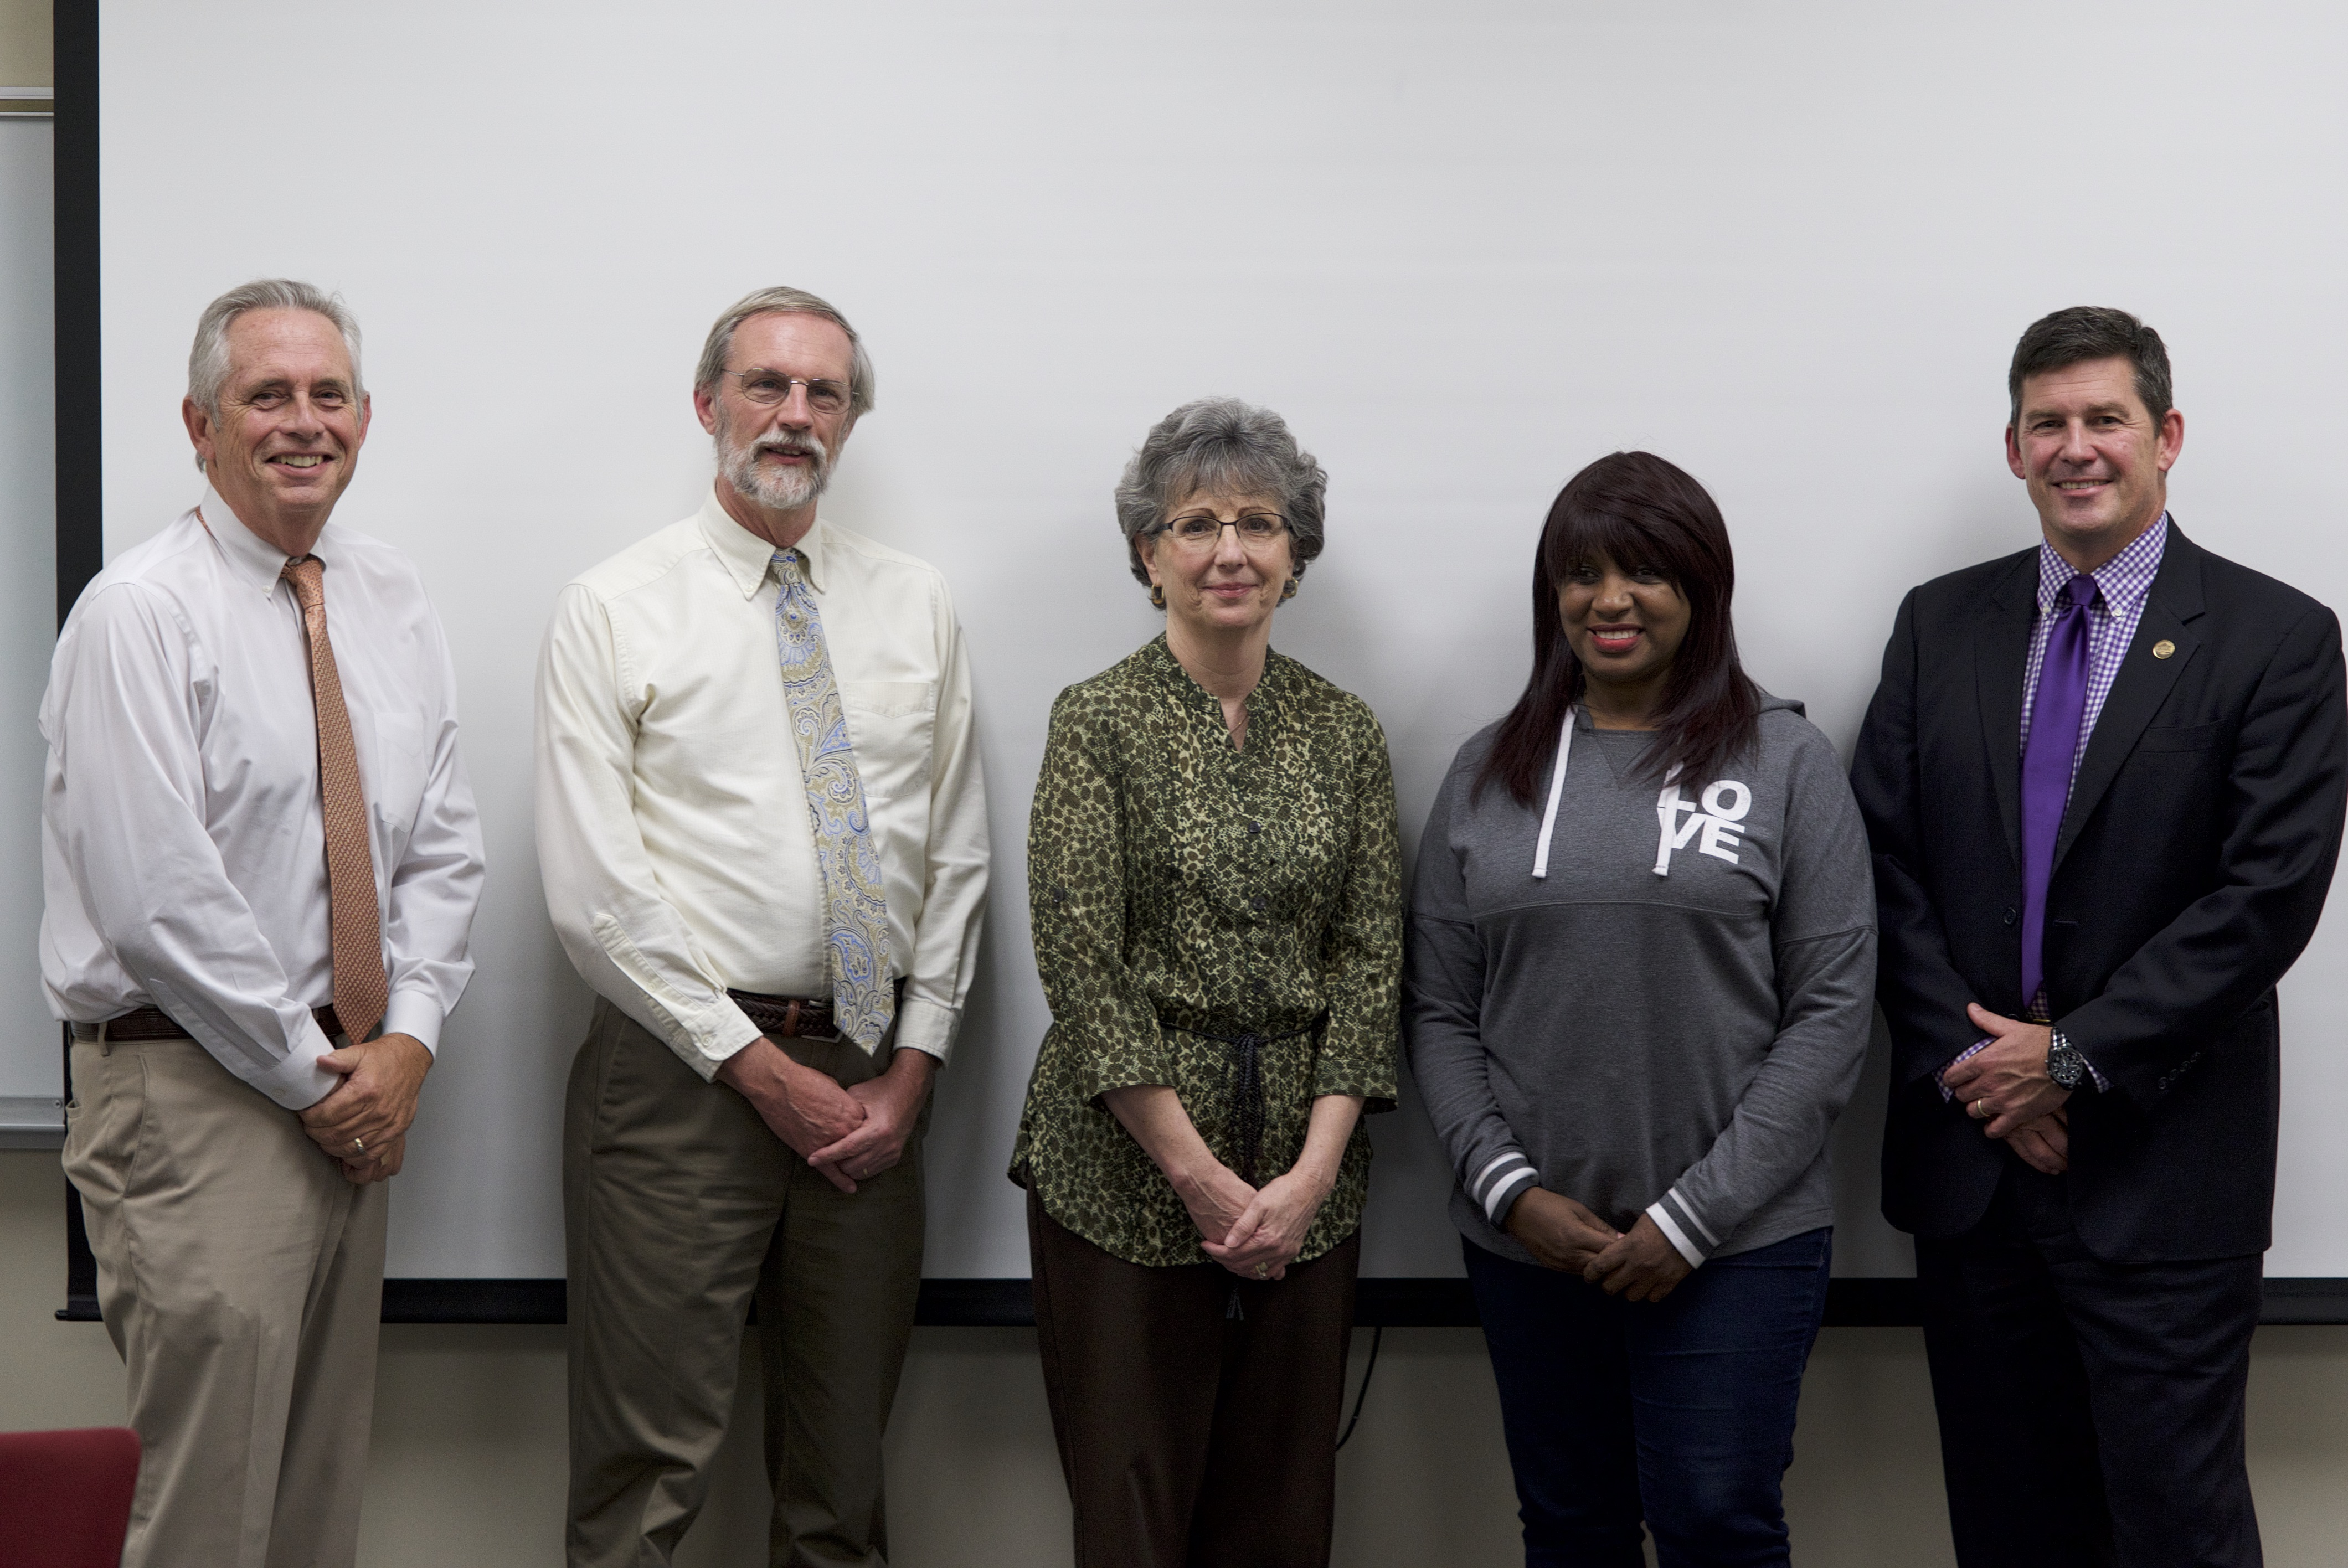 (L-R) Program dean Mark Smalley, instructor Phil Holleran, students Belinda Rumple and Thangee Griffin, and Mitchell president Tim Brewer